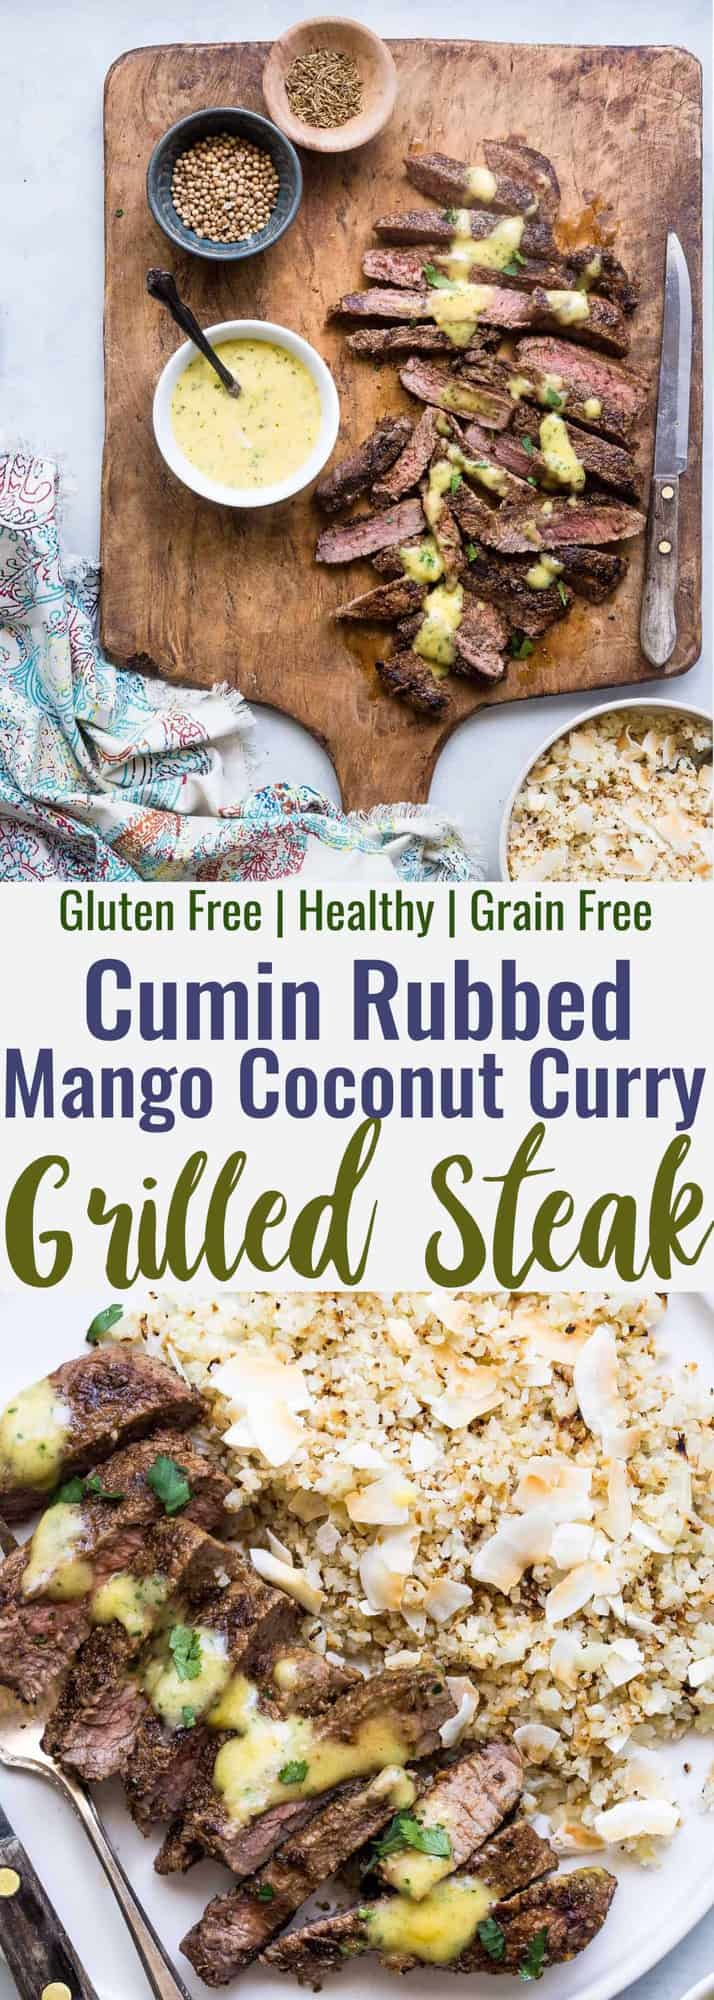 Mango Curry Steak with Coconut Cauliflower Rice - This mango curry steak is served with coconut cauliflower rice for an easy, weeknight dinner that is  under 400 calories, lower carb, gluten free and has bold, addicting flavor! | #Foodfaithfitness | #Glutenfree #Lowcarb #Healthy #Sugarfree #grainfree